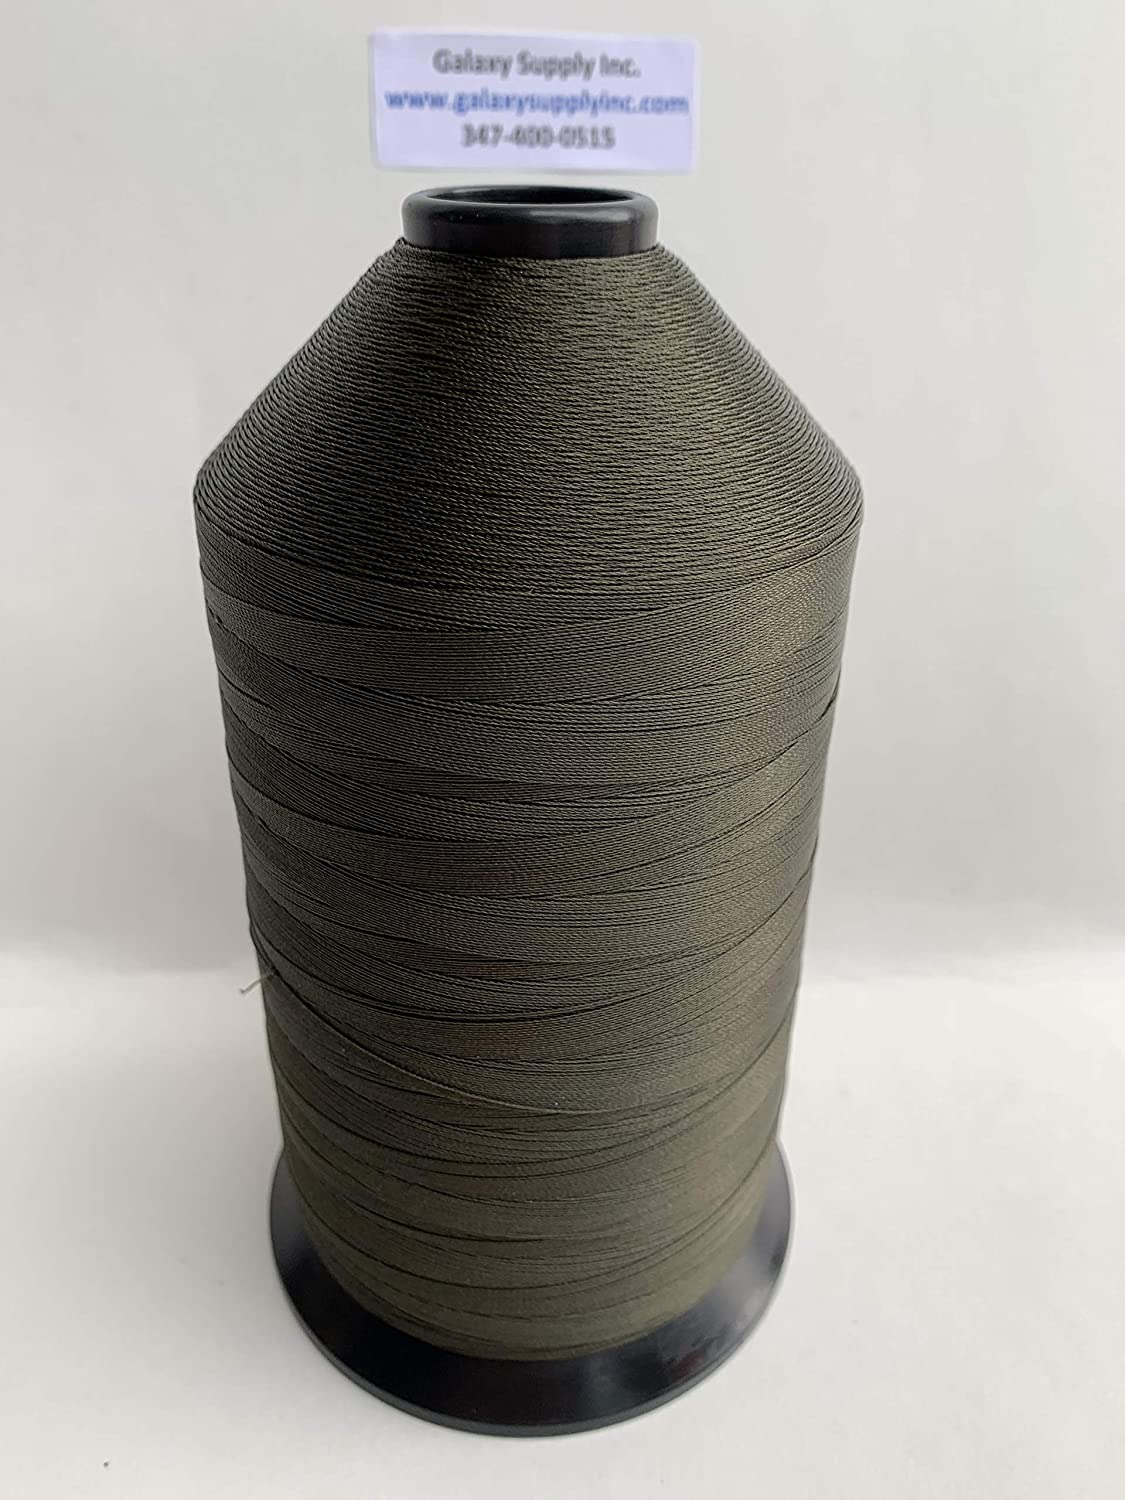 TEX-70 Bonded Nylon #69 Upholstery Thread, 16 oz- ODS-1 42844,$72 for 3 Spools,If You Need 3 Different Colors, Please Send The Message to us, We got 15 Color for Clients.